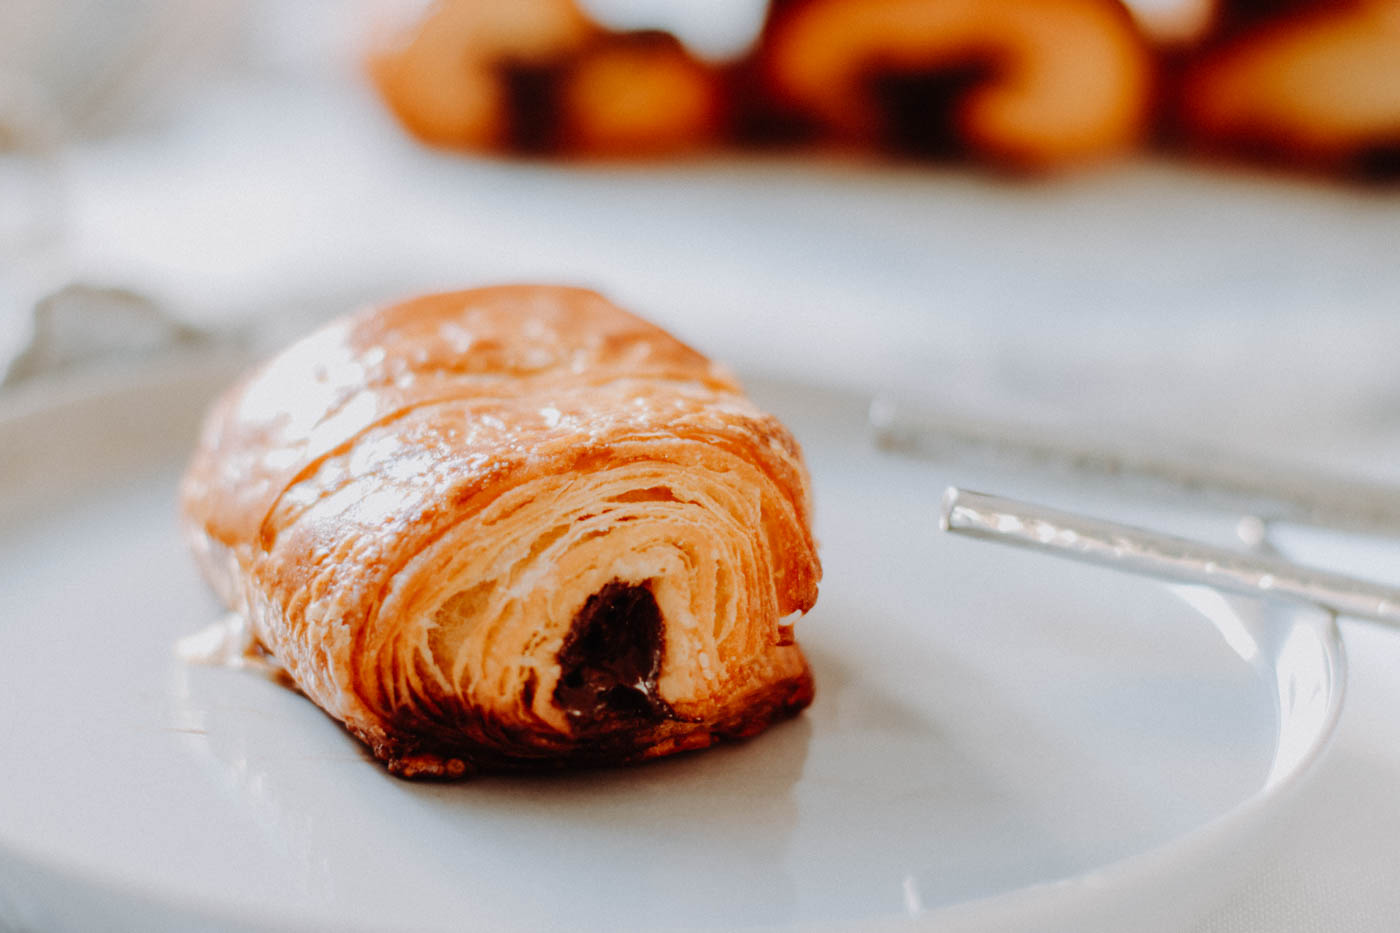 Pain au chocolat Layers after layers of deliciousness: Buttery dough wrapped around dark chocolate.